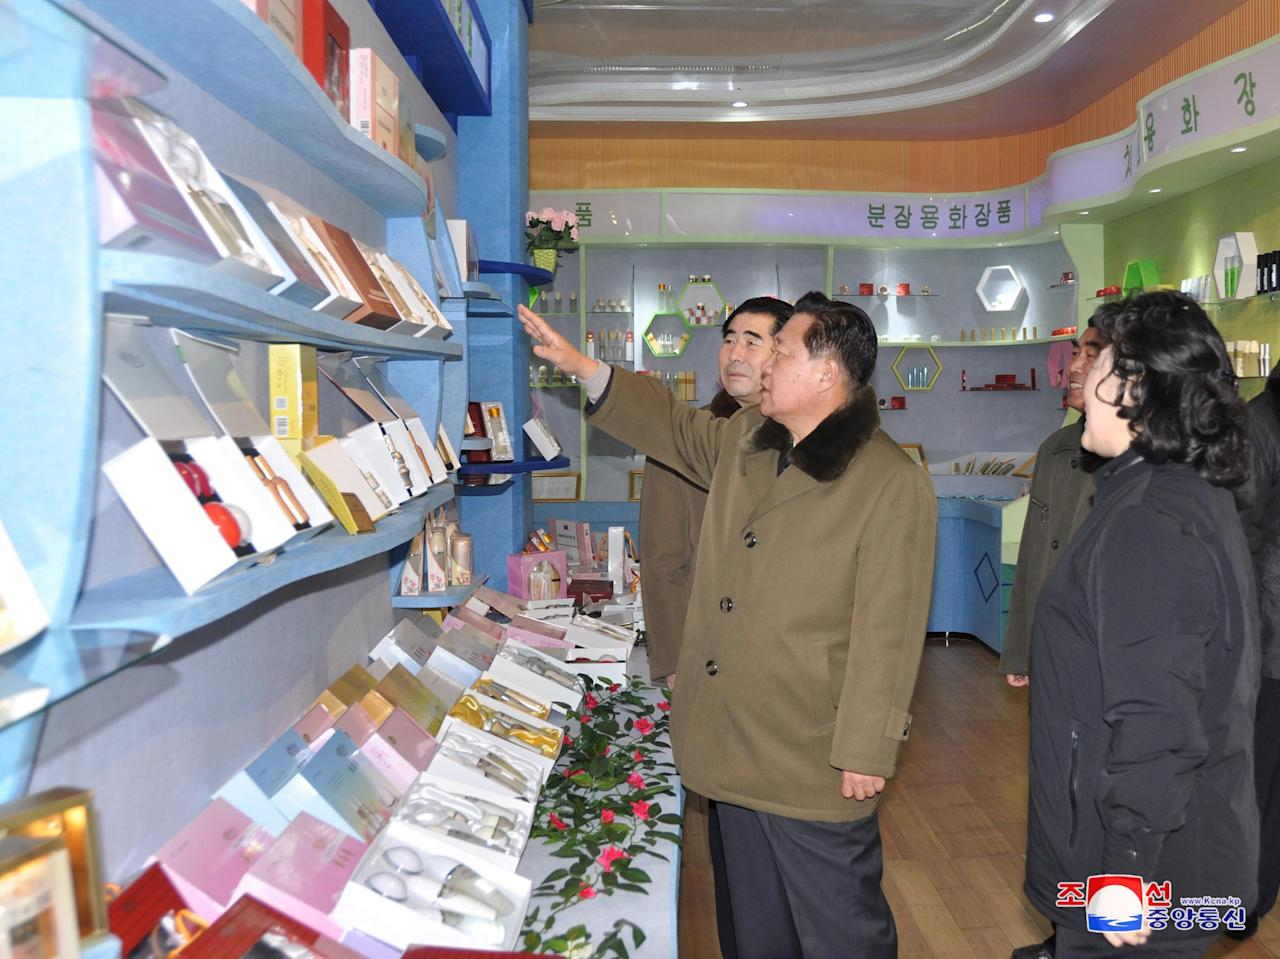 North Korean official Choe Ryong Hae gestures during a visit to the completed cosmetics factory and cooperative farm in Sinuiju, in this photo released by North Korea's Korean Central News Agency (KCNA) in Pyongyang on January 16, 2018.   KCNA/via REUTERS   ATTENTION EDITORS - THIS PICTURE WAS PROVIDED BY A THIRD PARTY. REUTERS IS UNABLE TO INDEPENDENTLY VERIFY THE AUTHENTICITY, CONTENT, LOCATION OR DATE OF THIS IMAGE. NO THIRD PARTY SALES. SOUTH KOREA OUT.